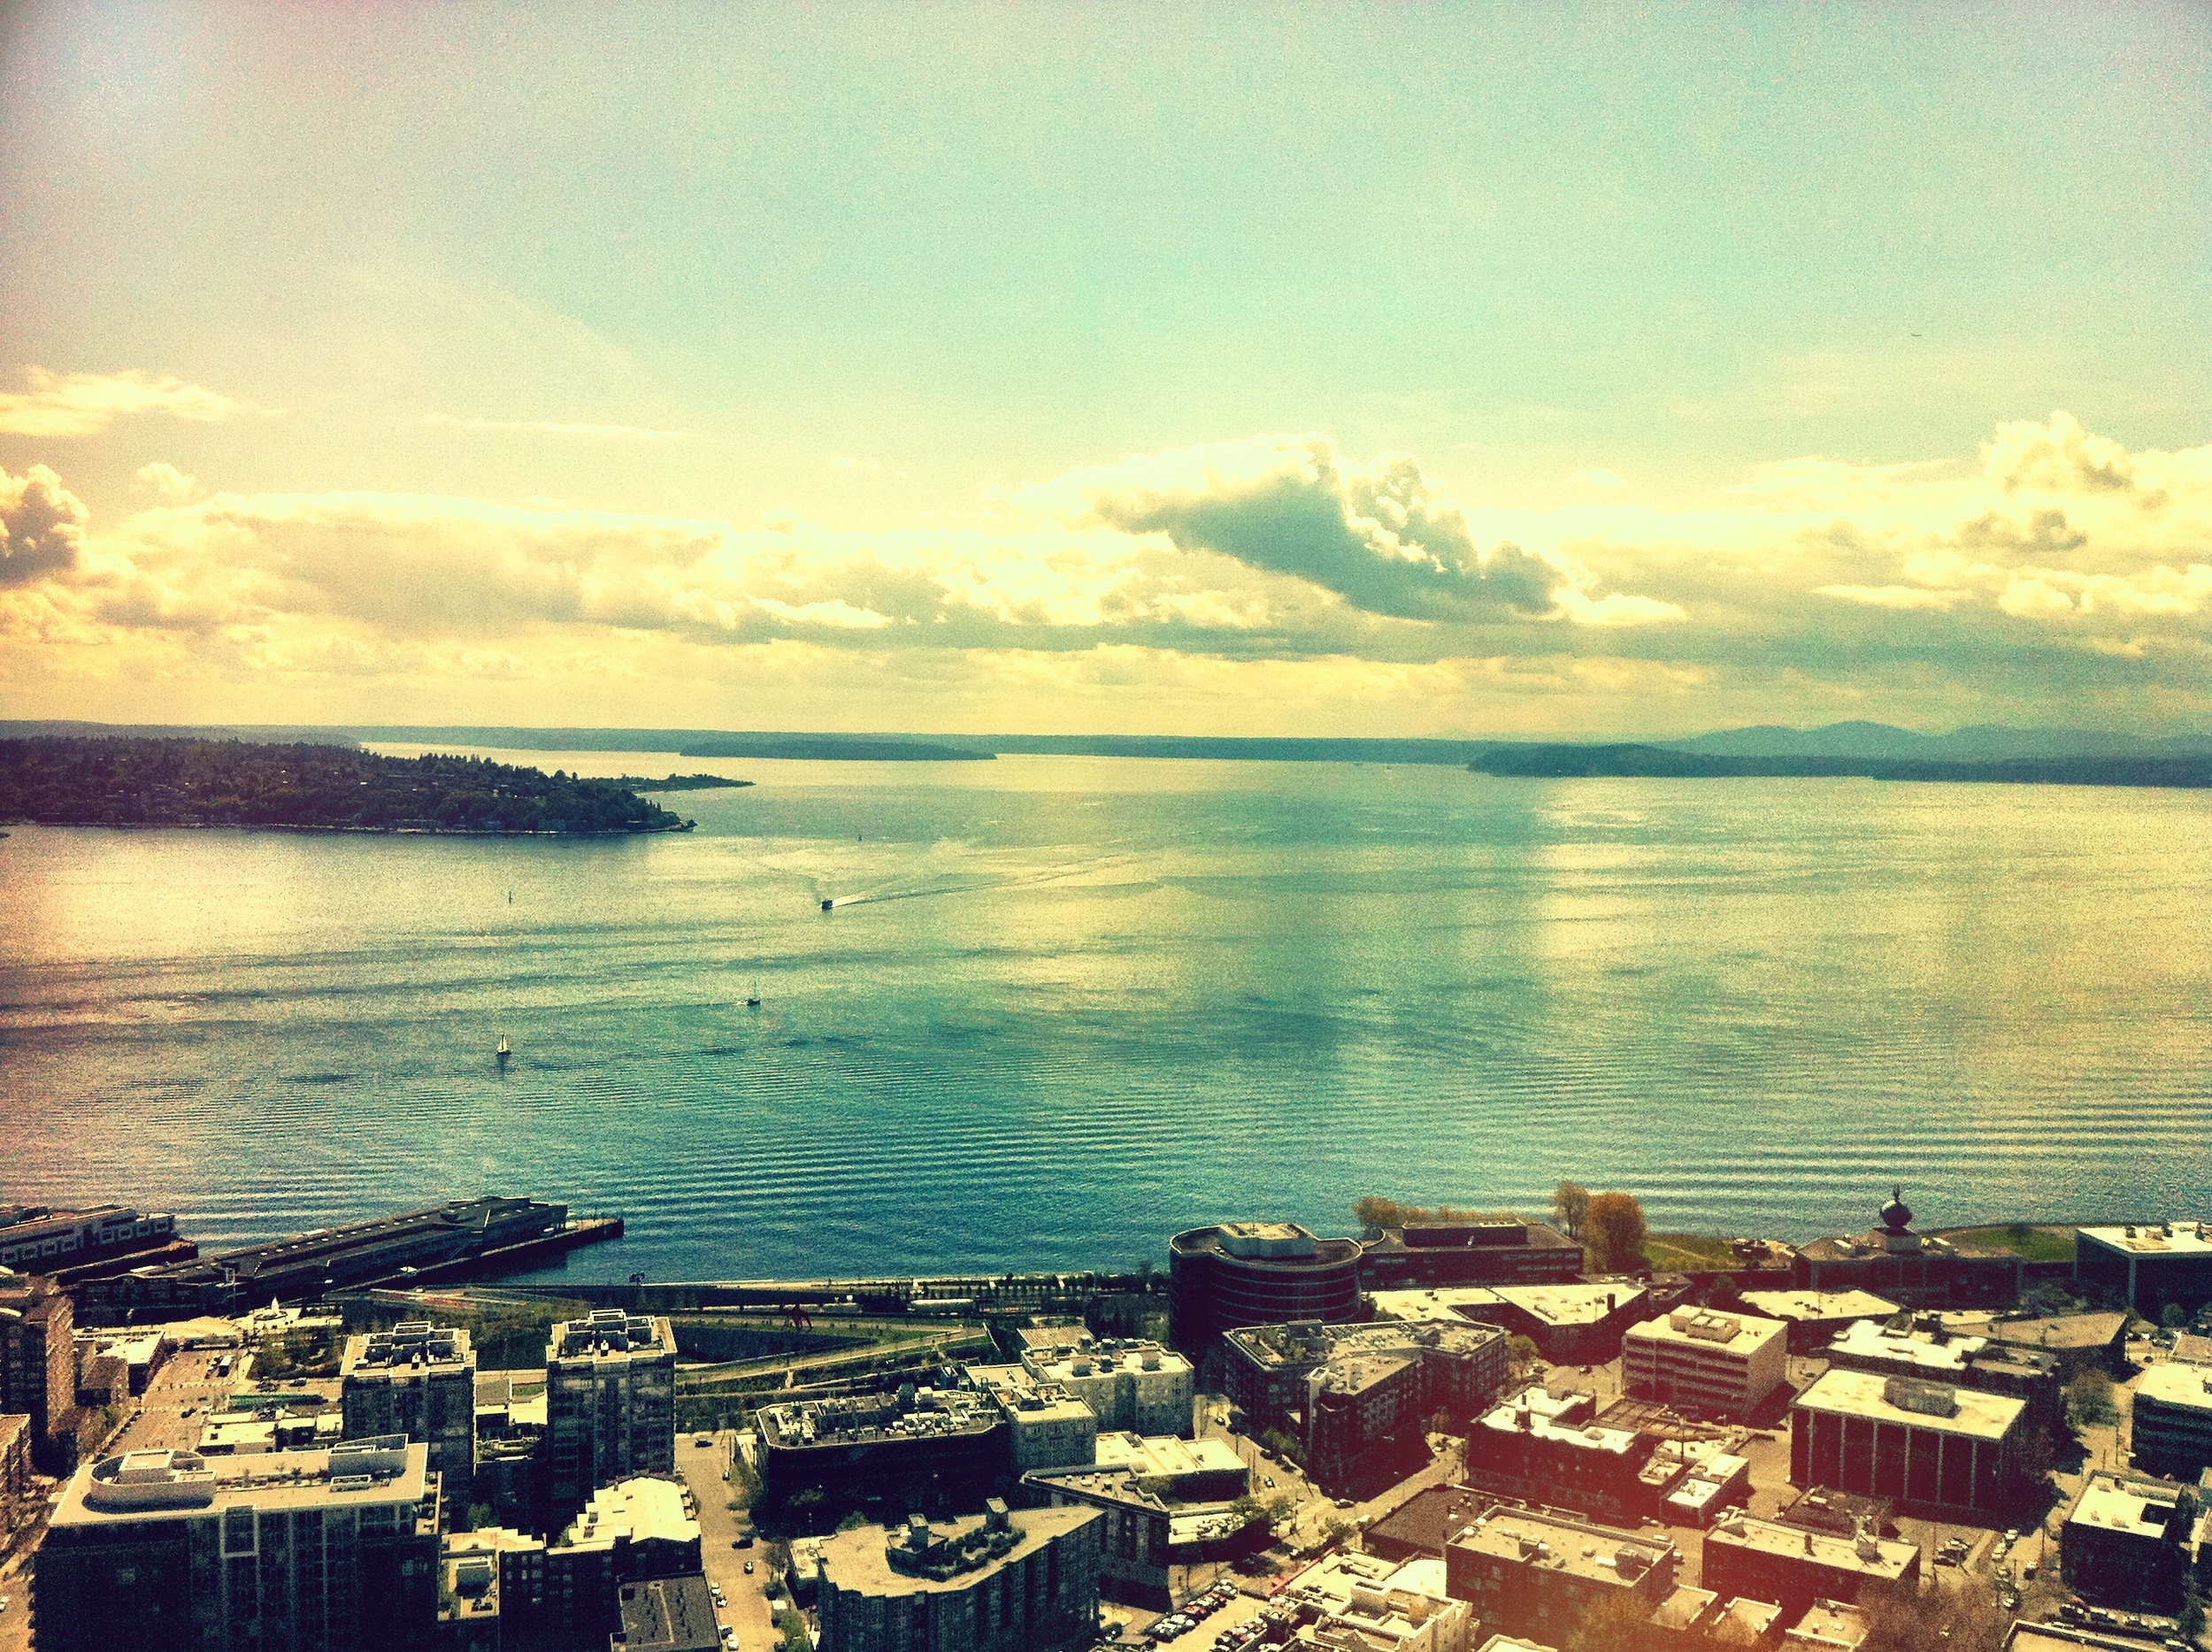 View of Puget Sound from the Space Needle